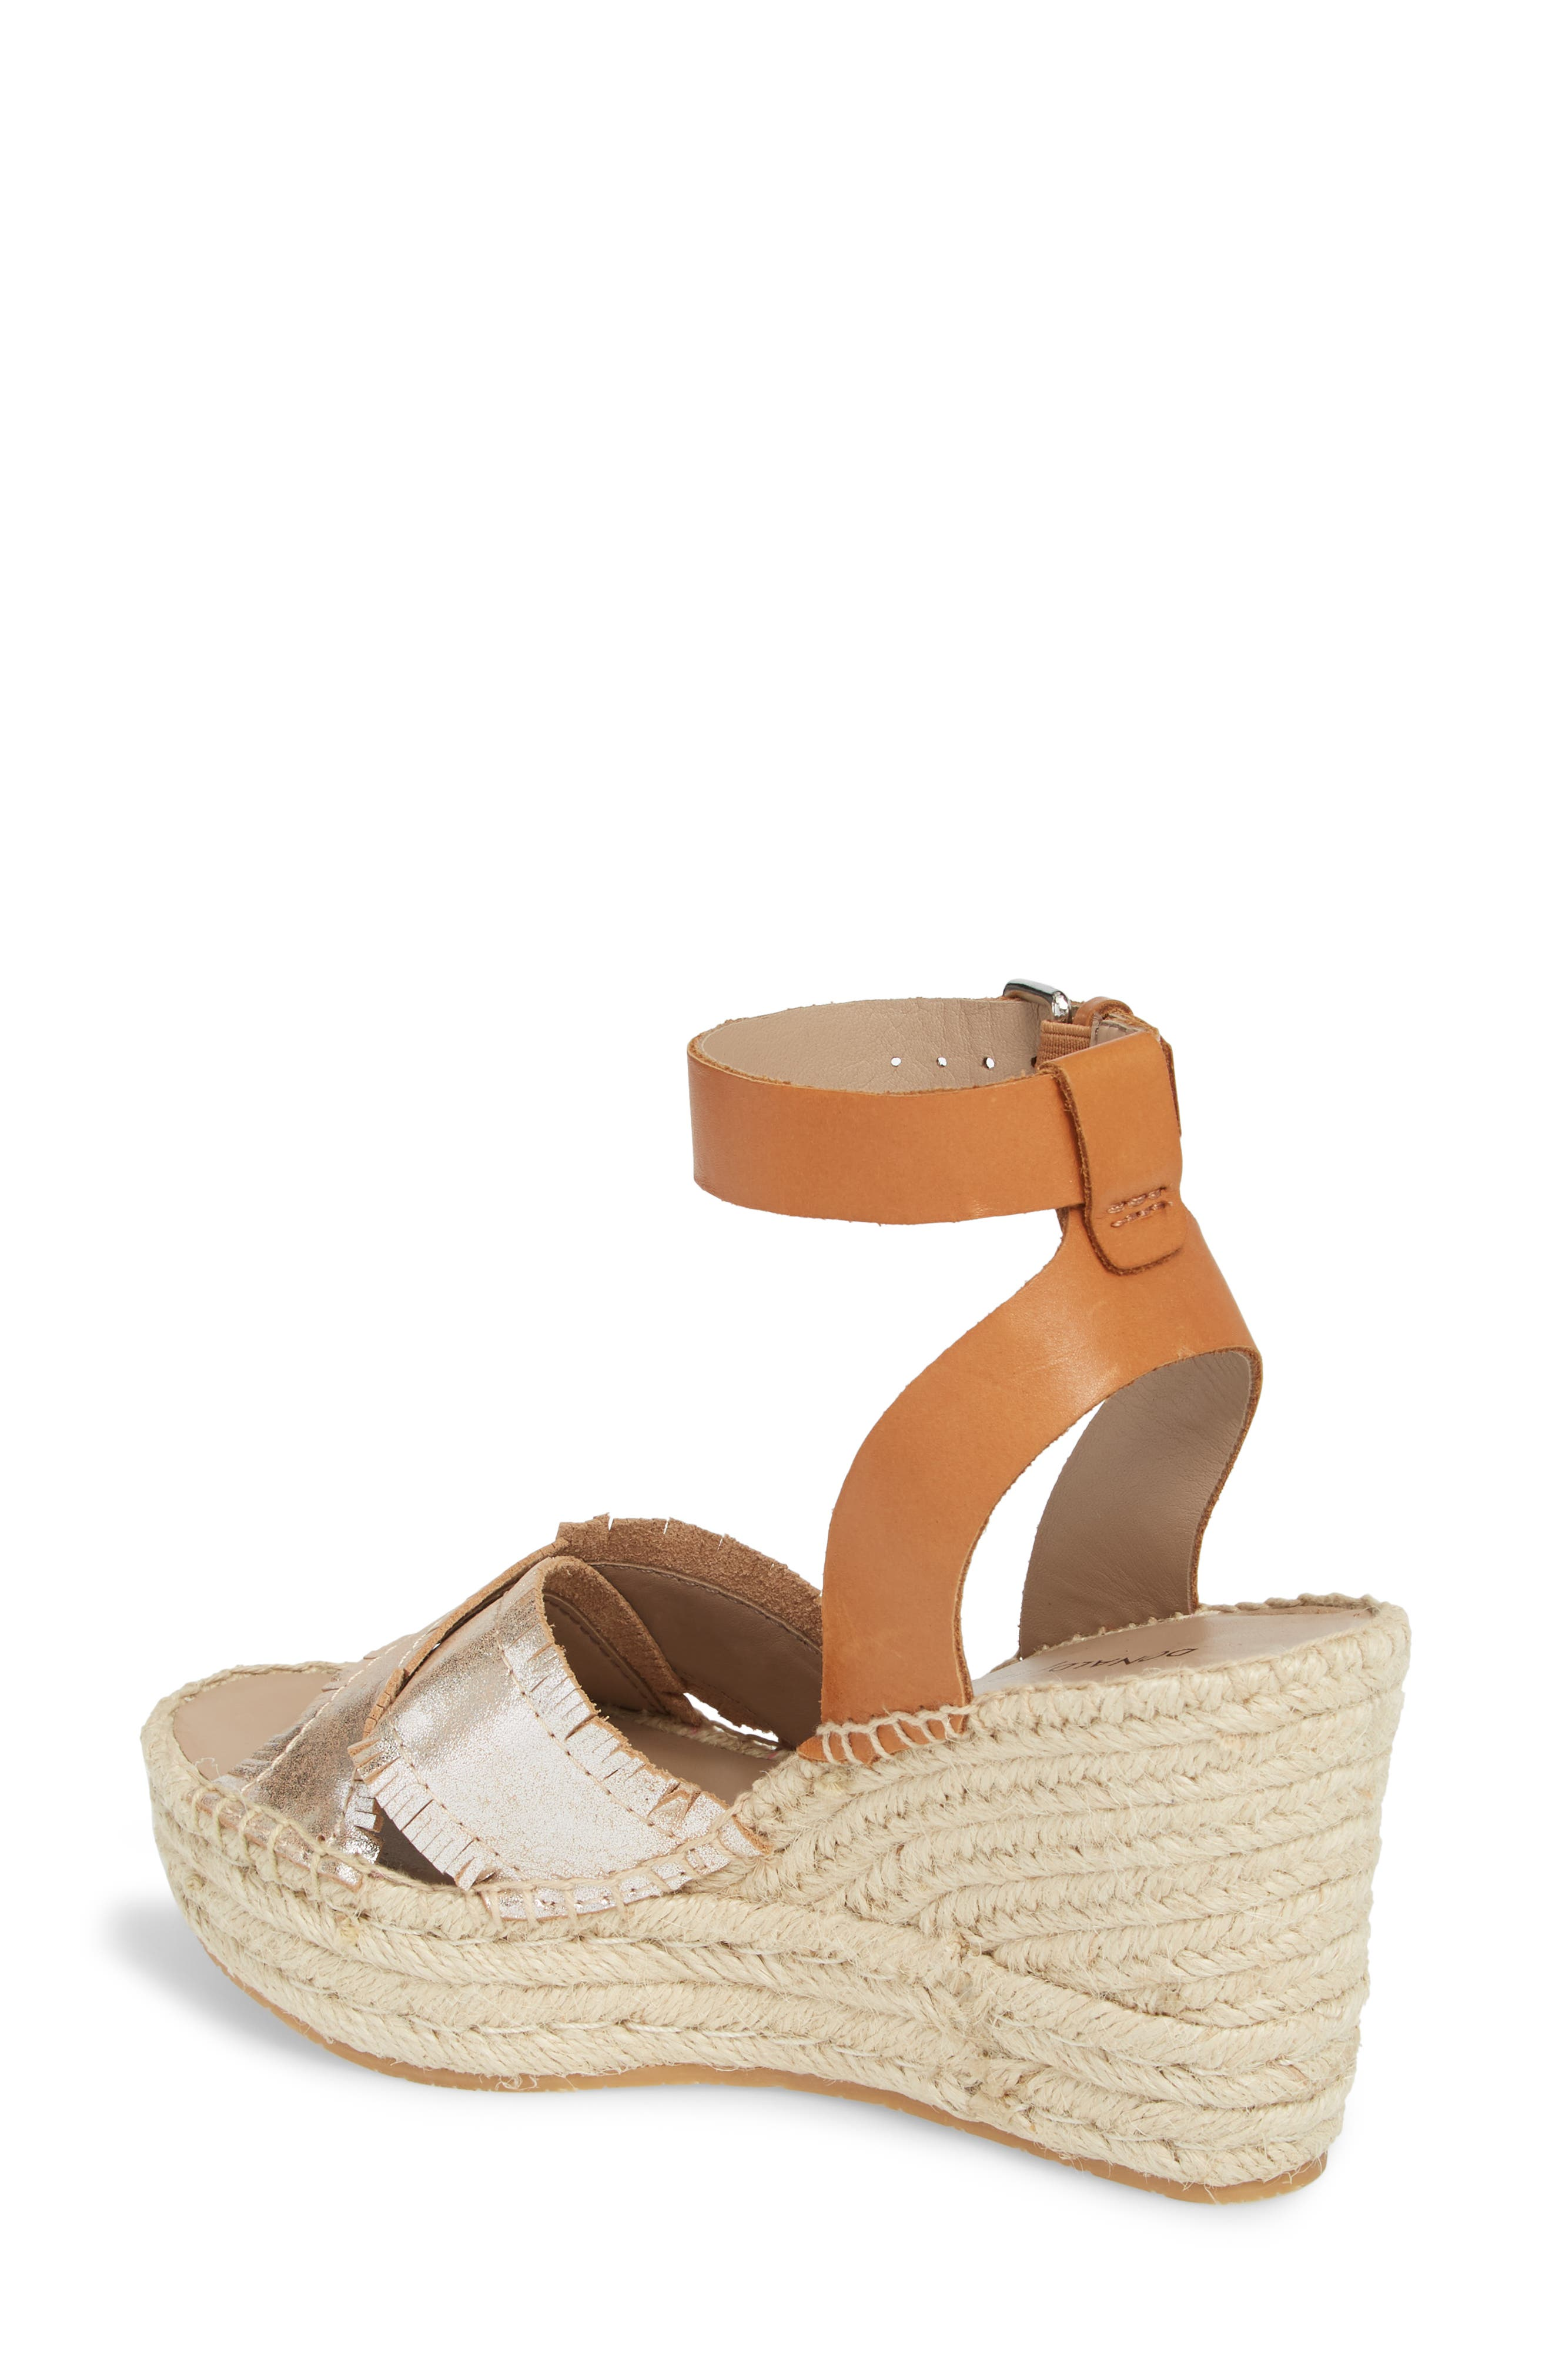 Ines Espadrille Wedge Sandal,                             Alternate thumbnail 2, color,                             SILVER LEATHER